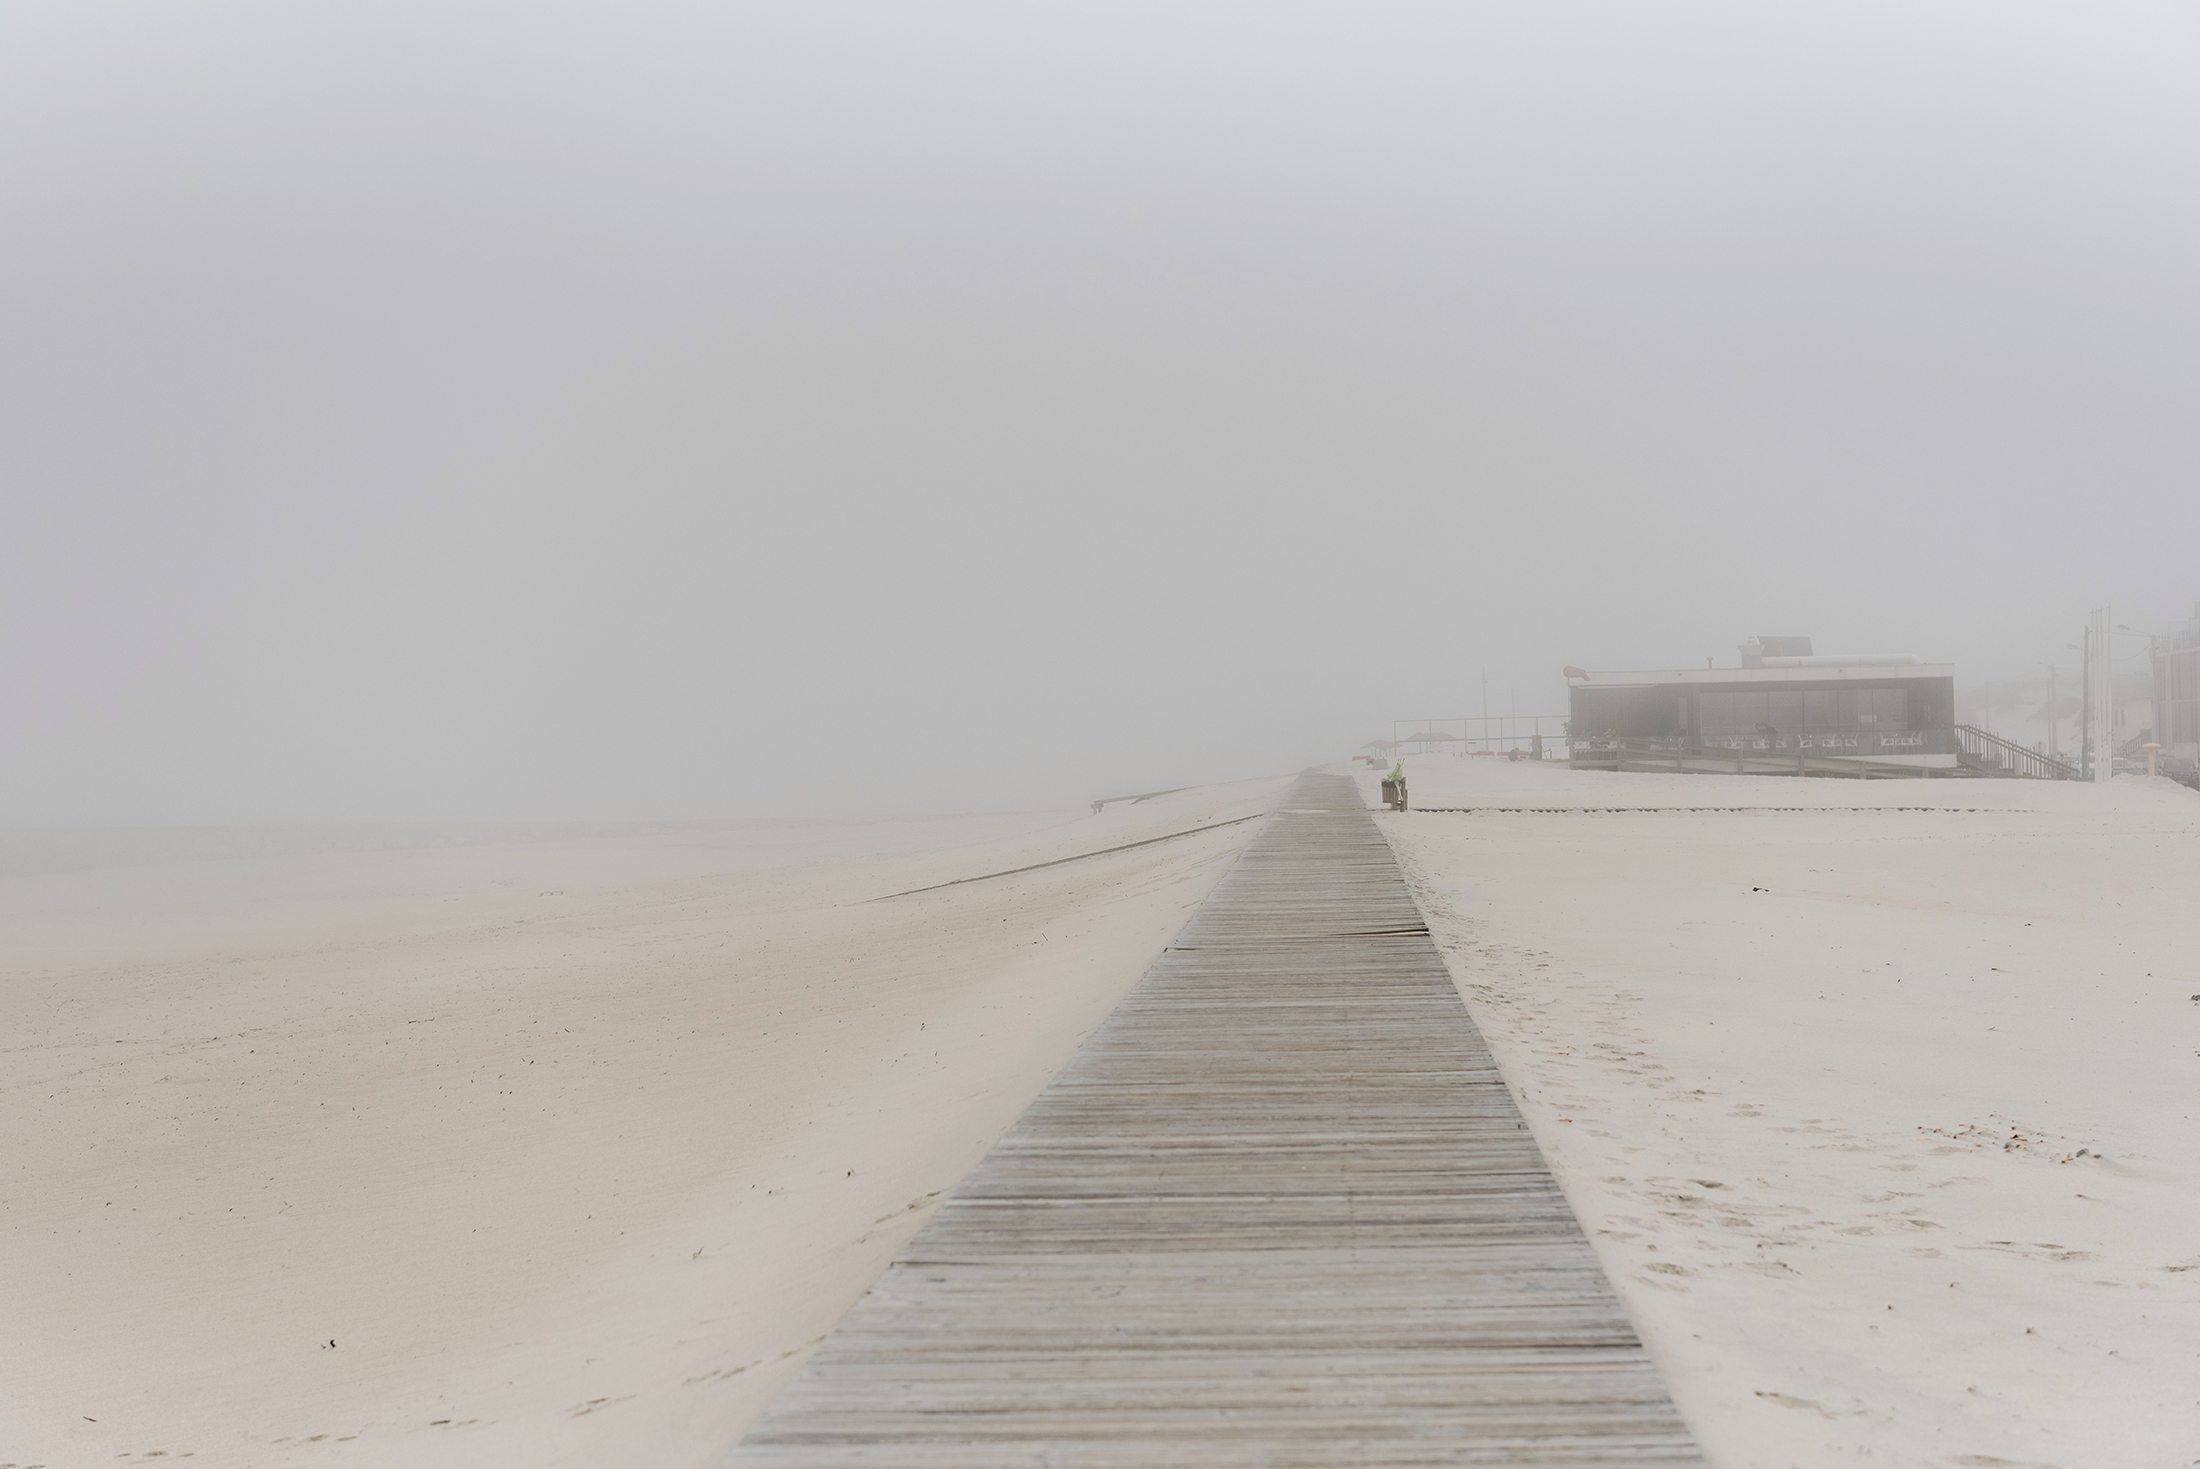 foggy beach morning Costa Nova Aveiro Portugal